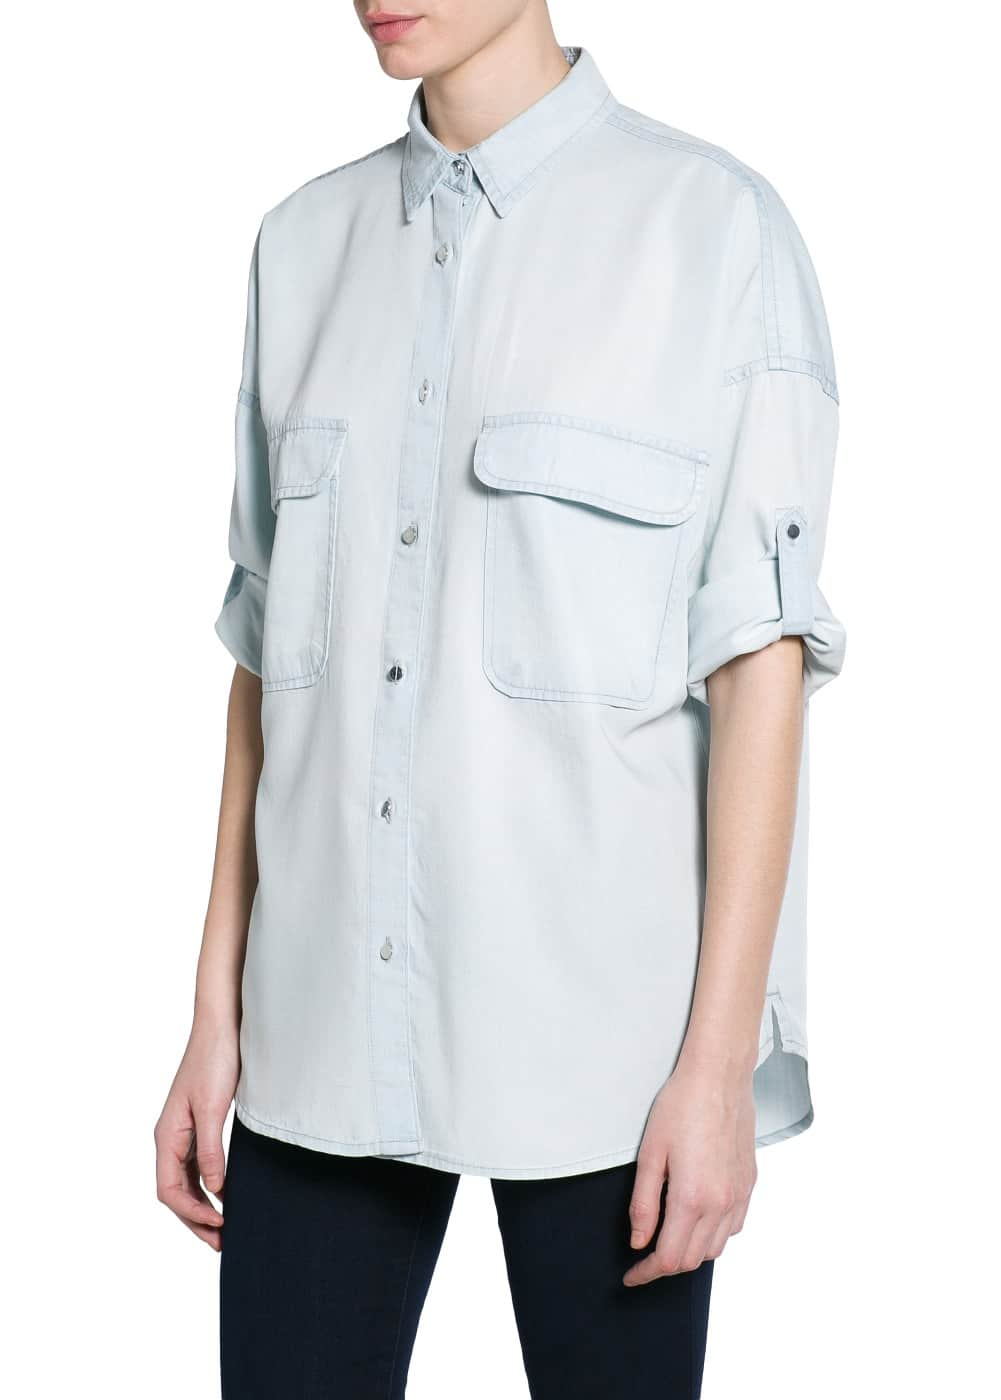 Two-pocket soft fabric shirt